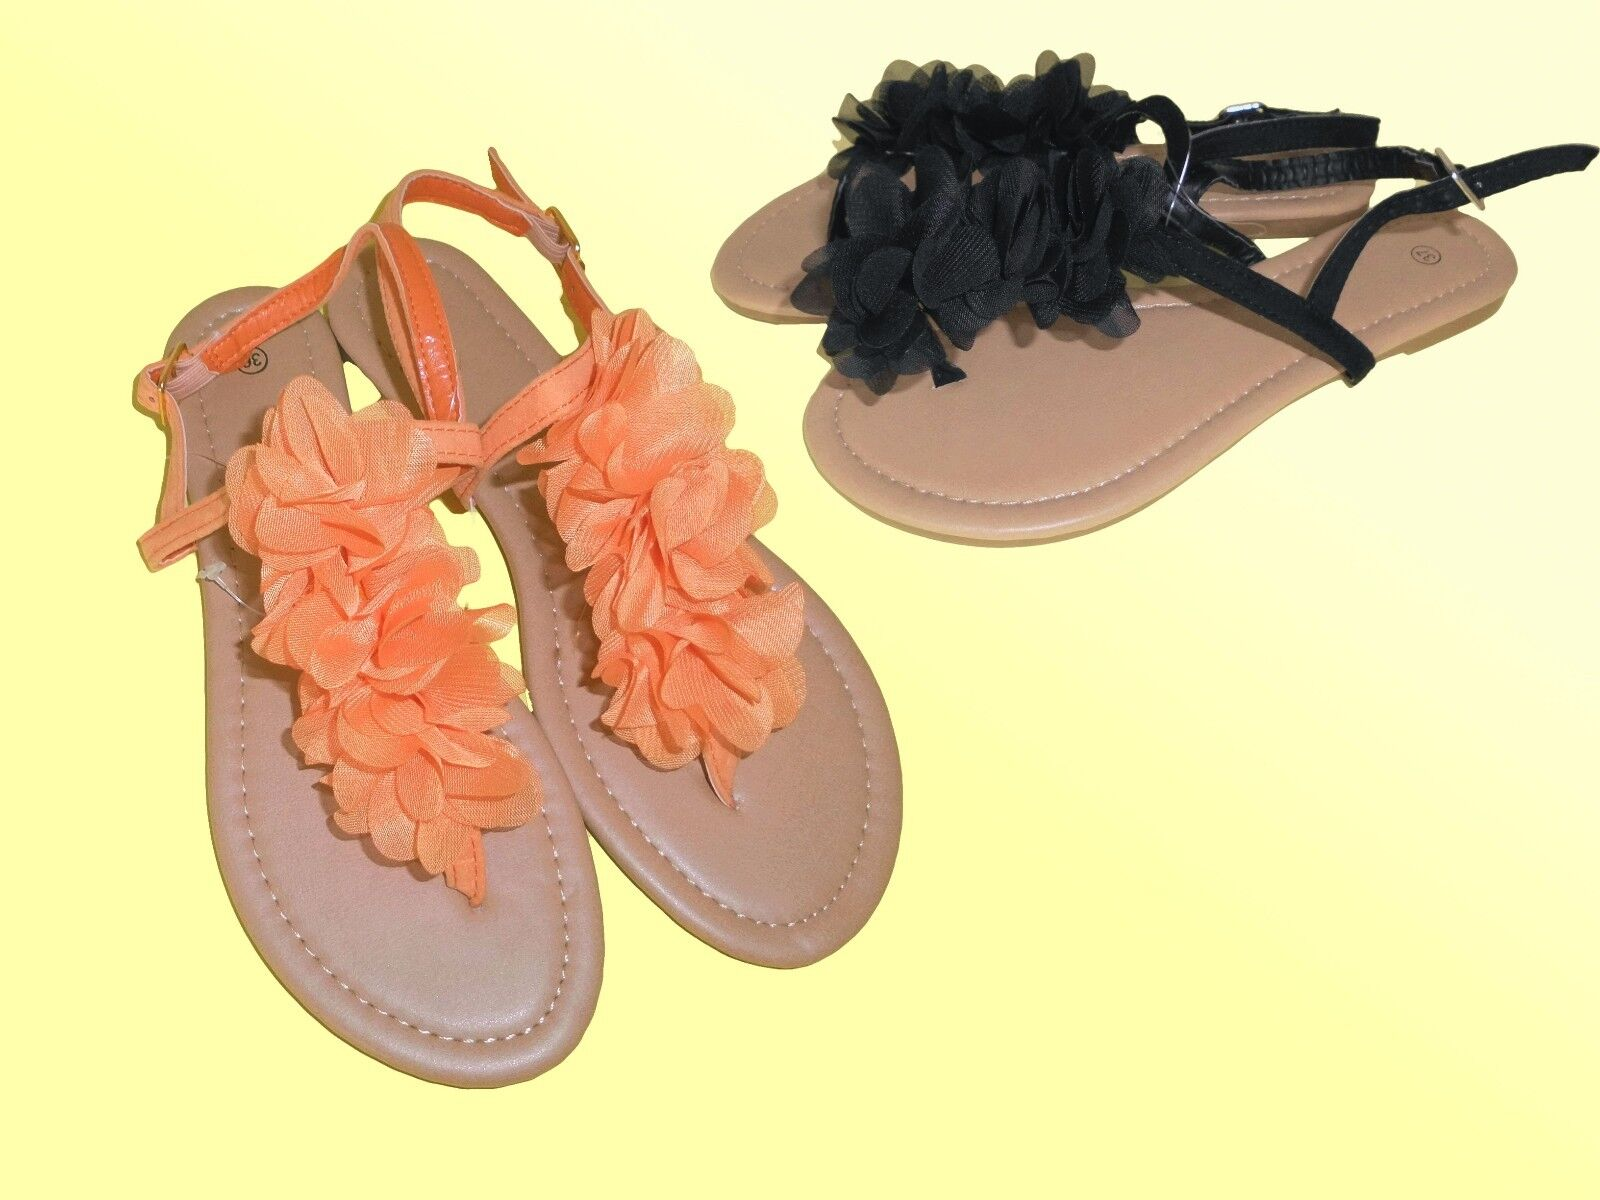 Ladies Size Sandals Sandals Tythes Renner Size Ladies gr.36-41 color selectable NEW fc6454